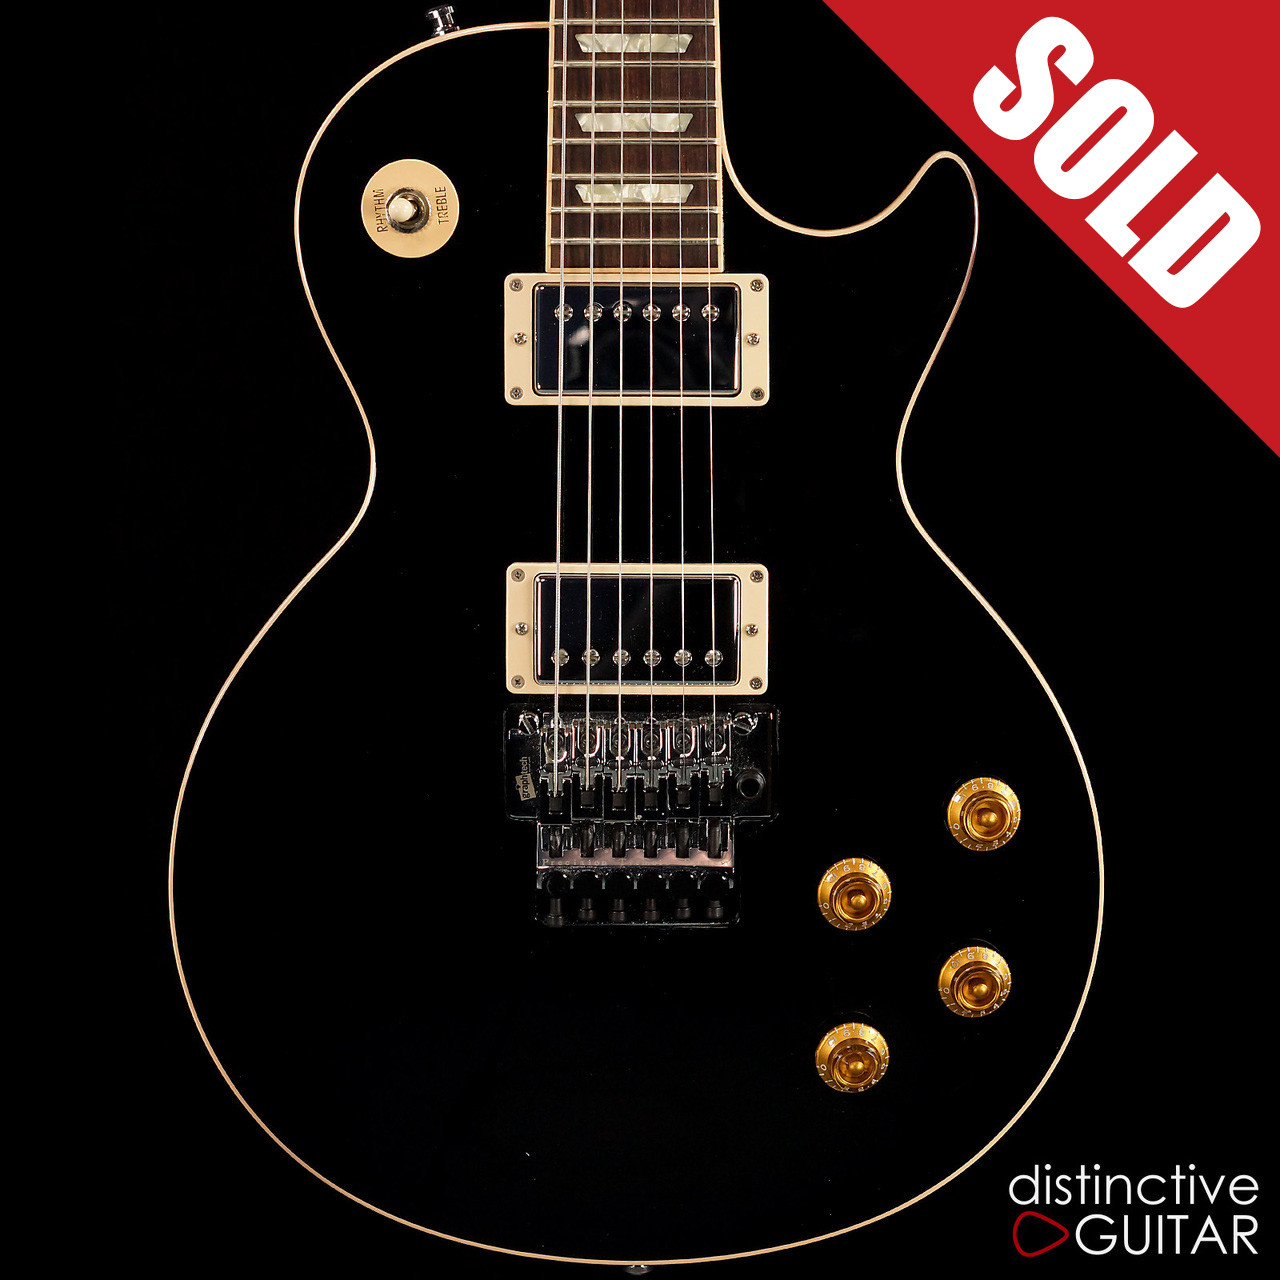 Les Paul Axcess Wiring Diagram Data Schema Epiphone Mods A Special Series For Alex Lifeson Trusted Diagrams